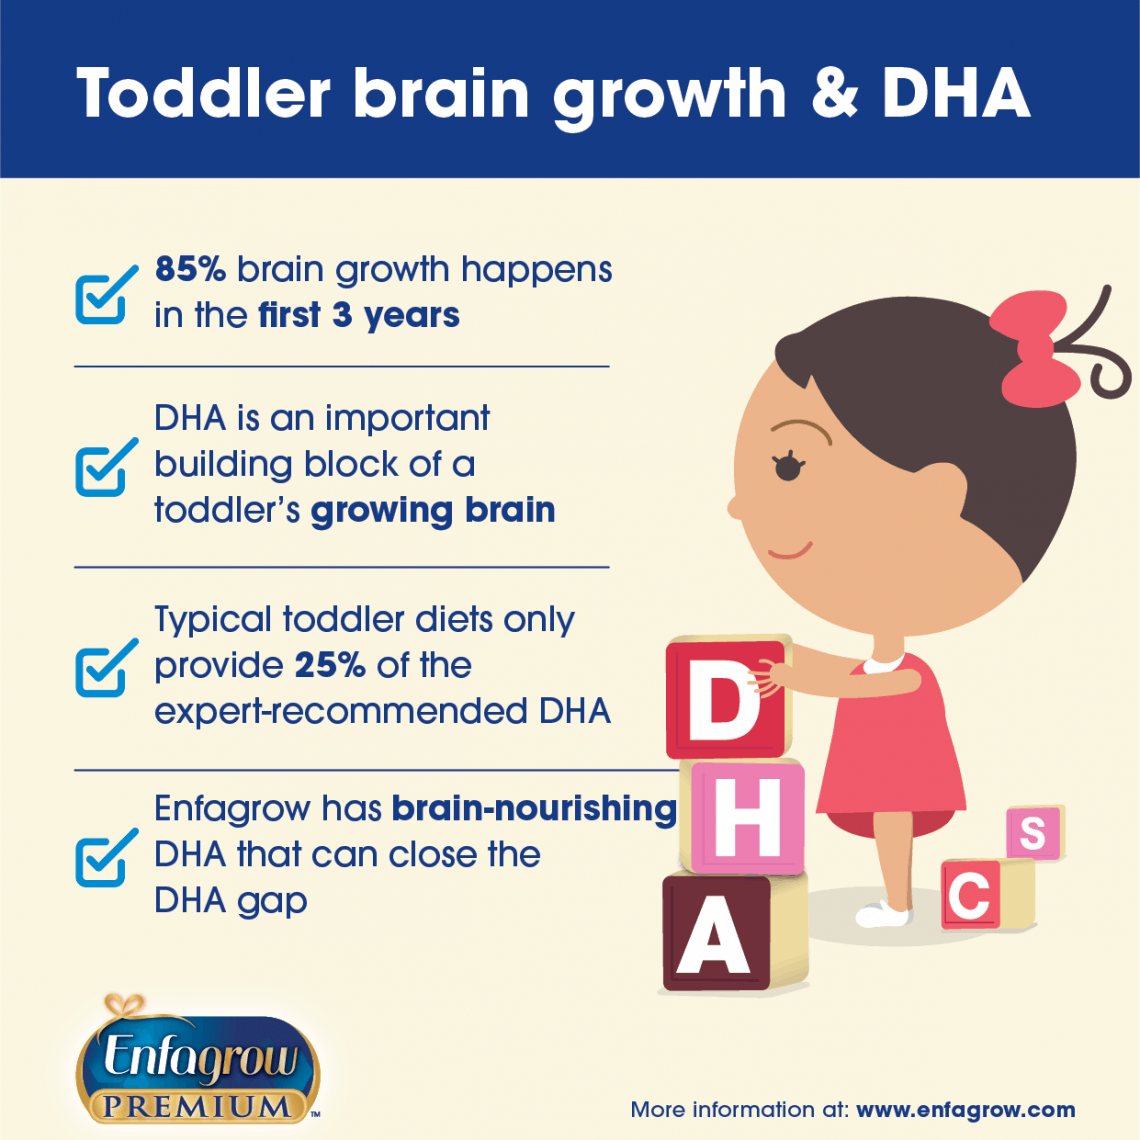 DHA for toddlers